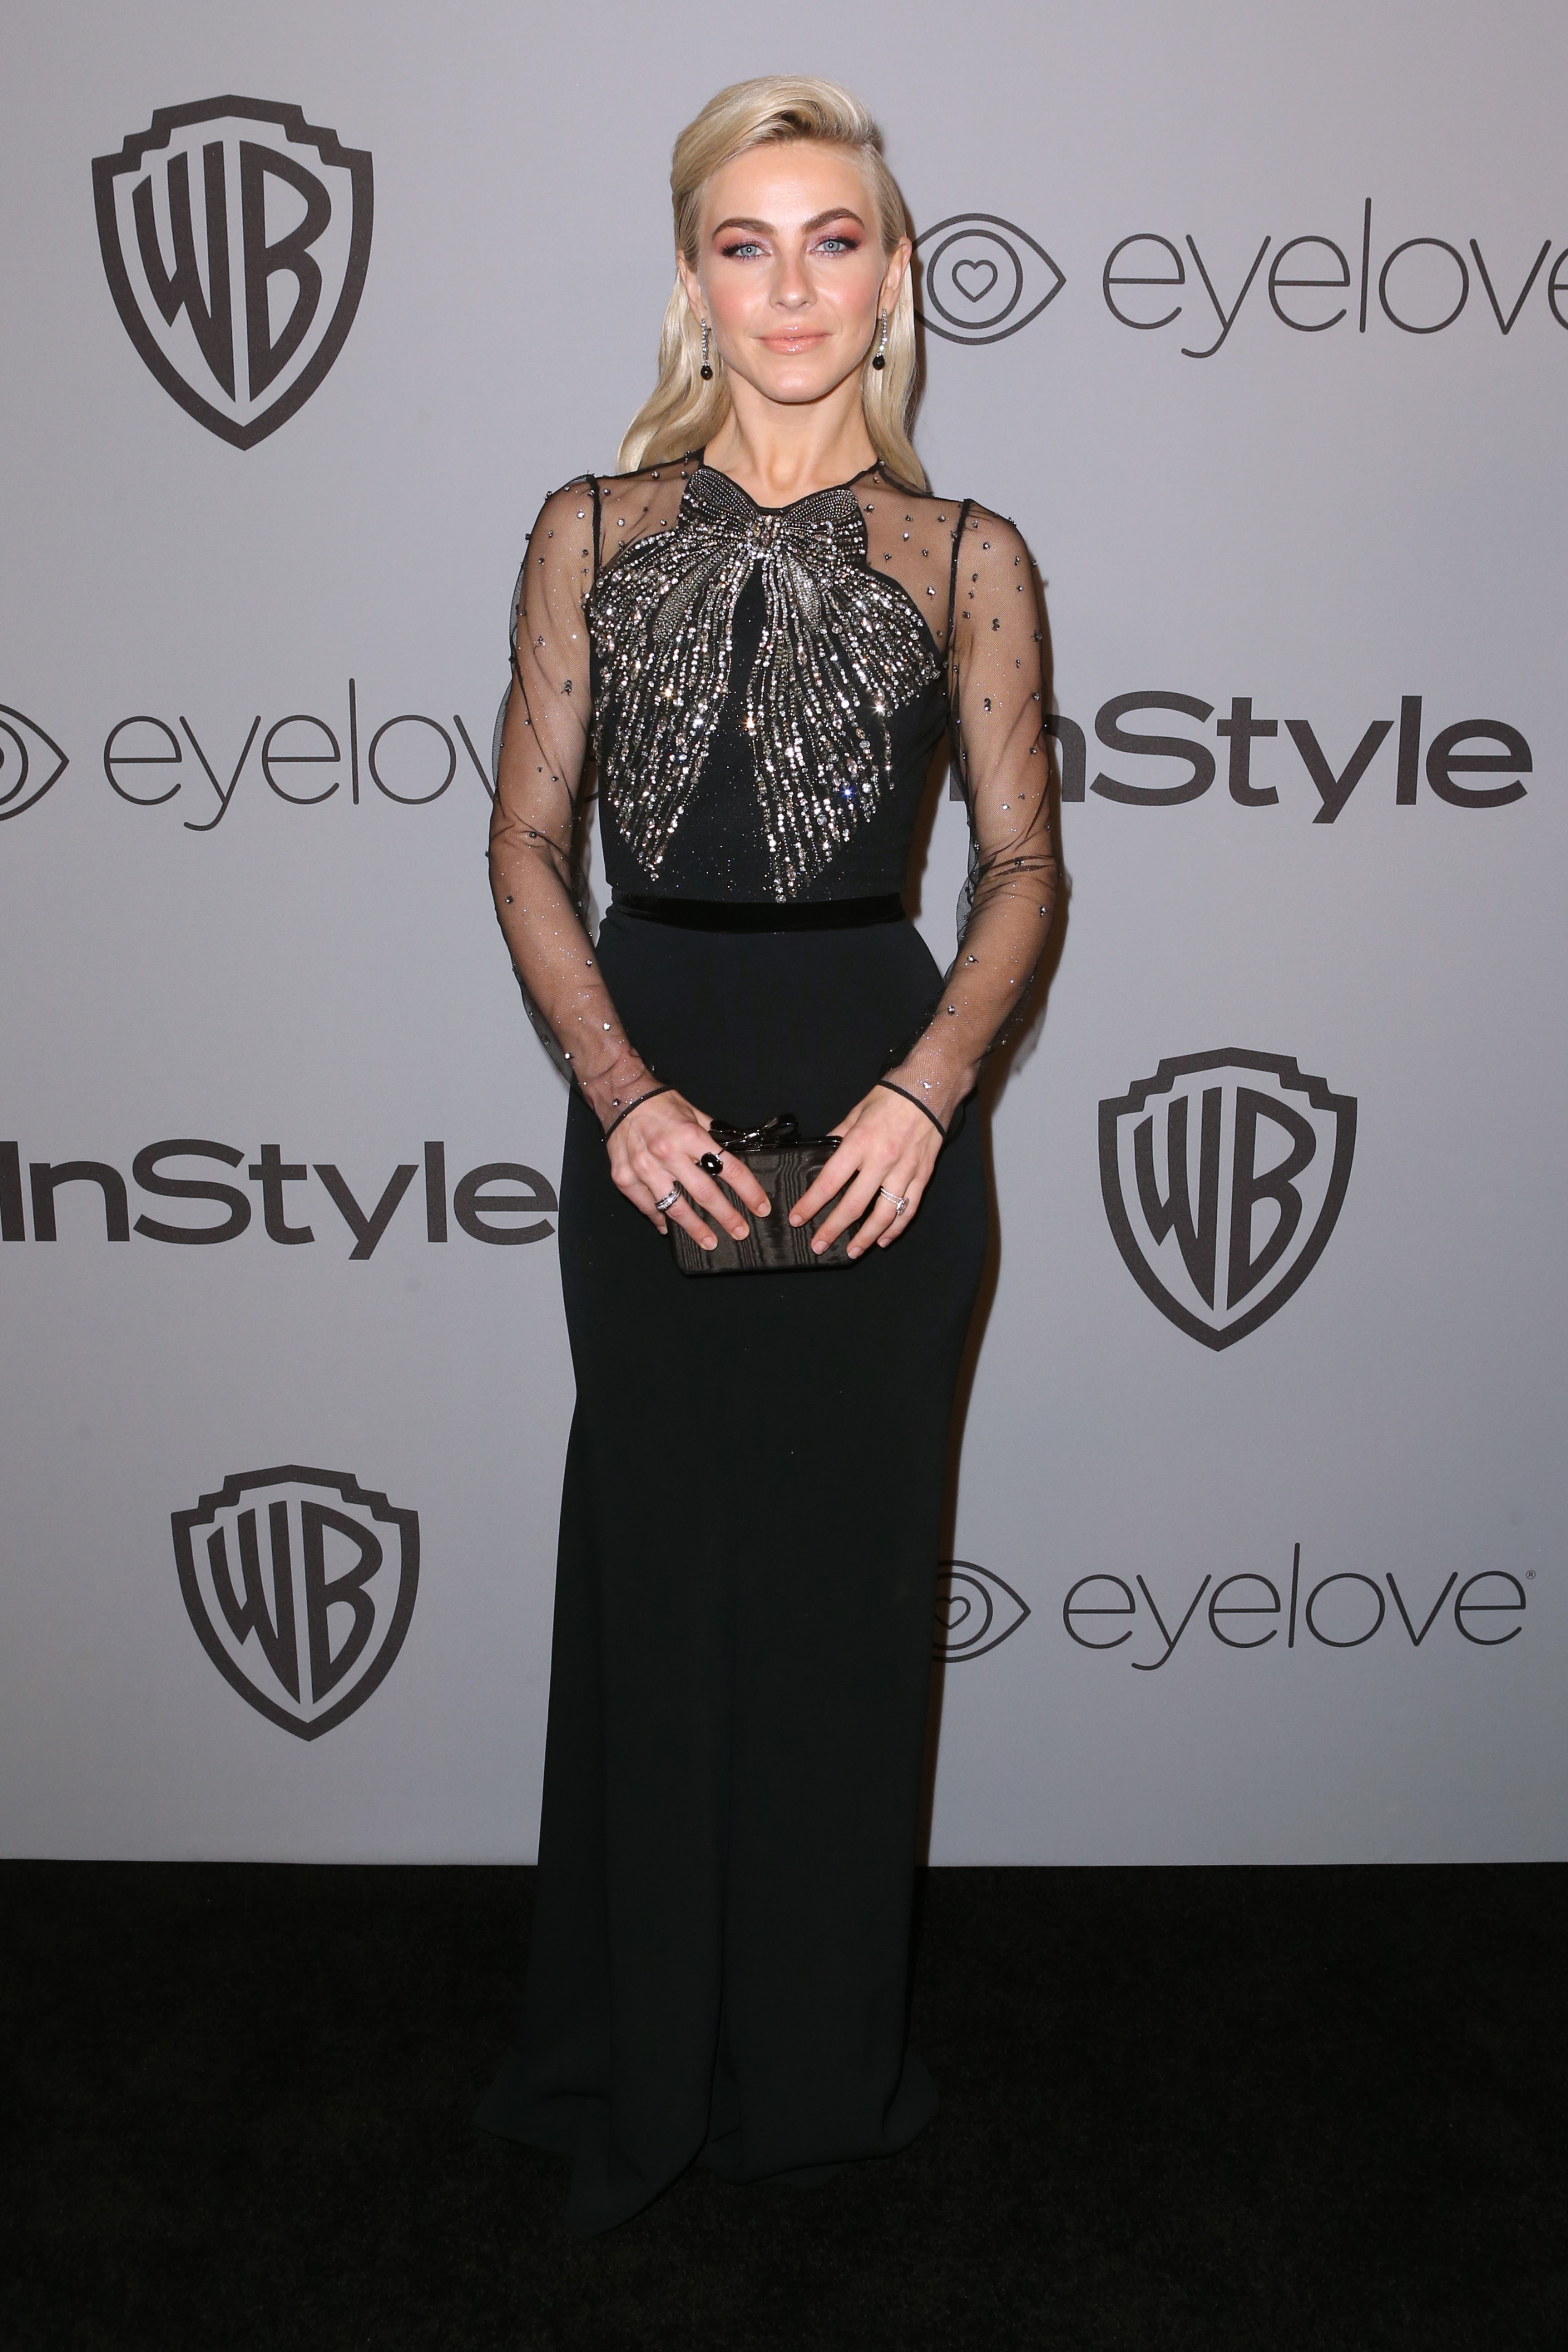 Julianne Hough attends the InStyle and Warner Bros. Golden Globes afterparty in Beverly Hills on Jan. 7, 2018.